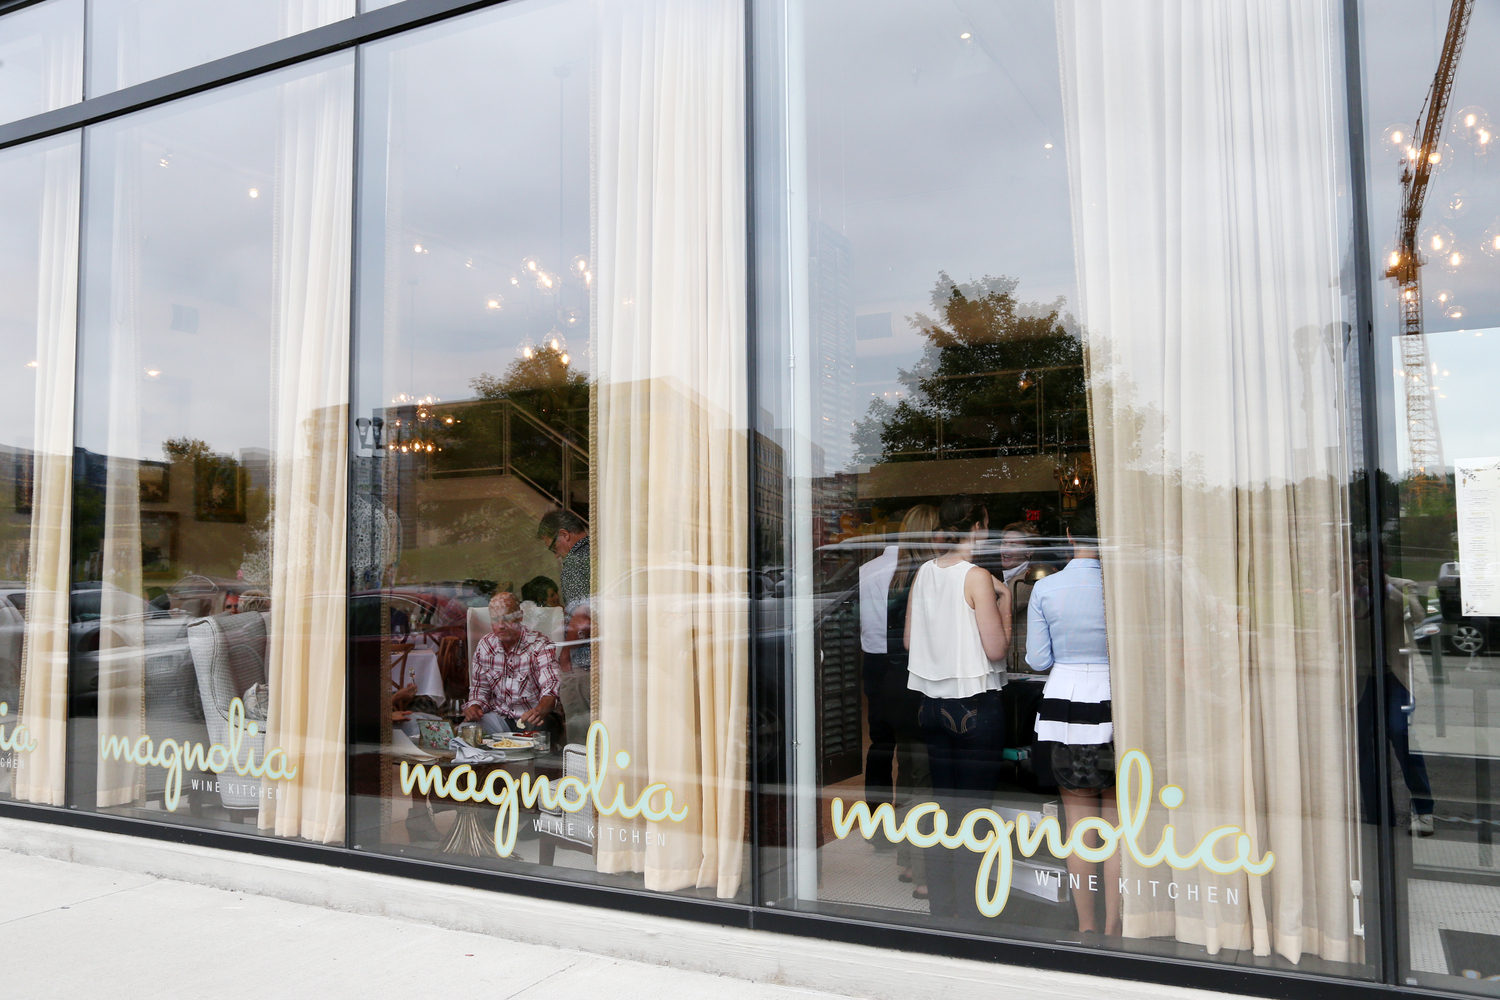 magnolia wine kitchen des moines - Magnolia Wine Kitchen